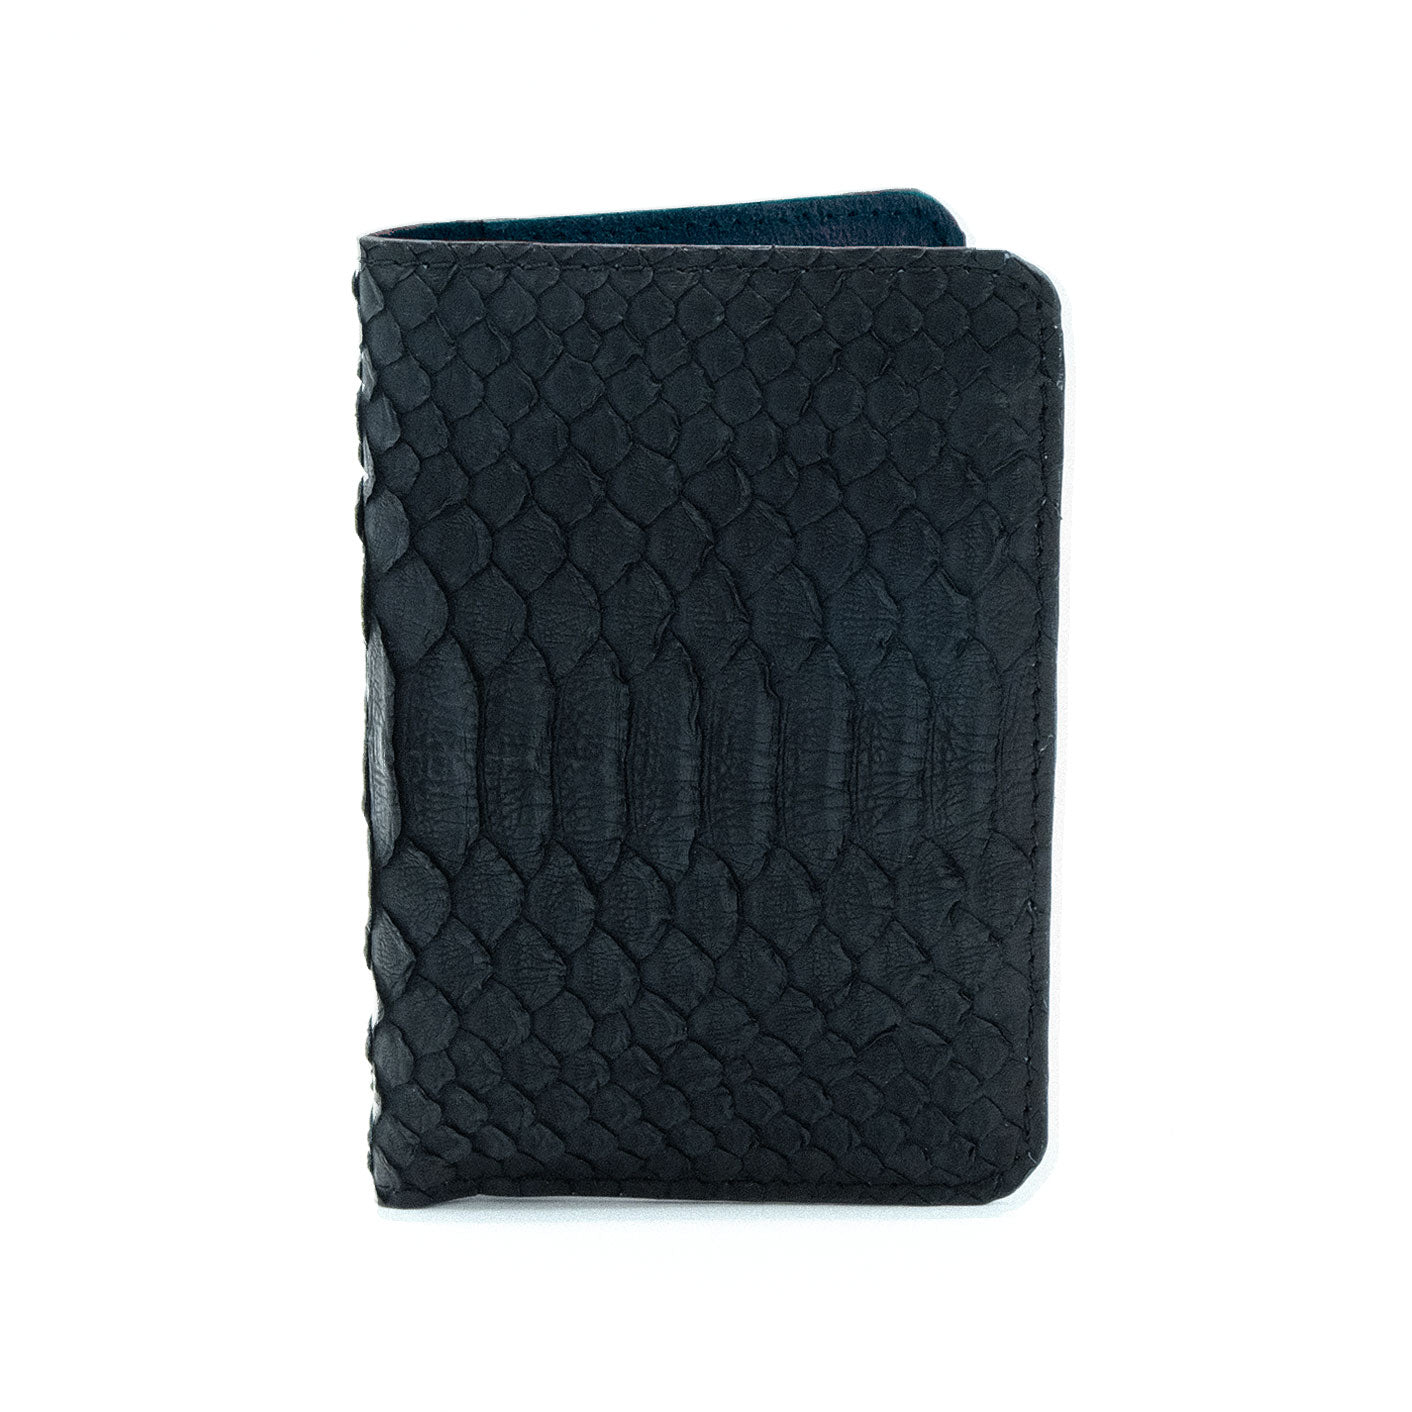 Onyx Black Python Passport Cover